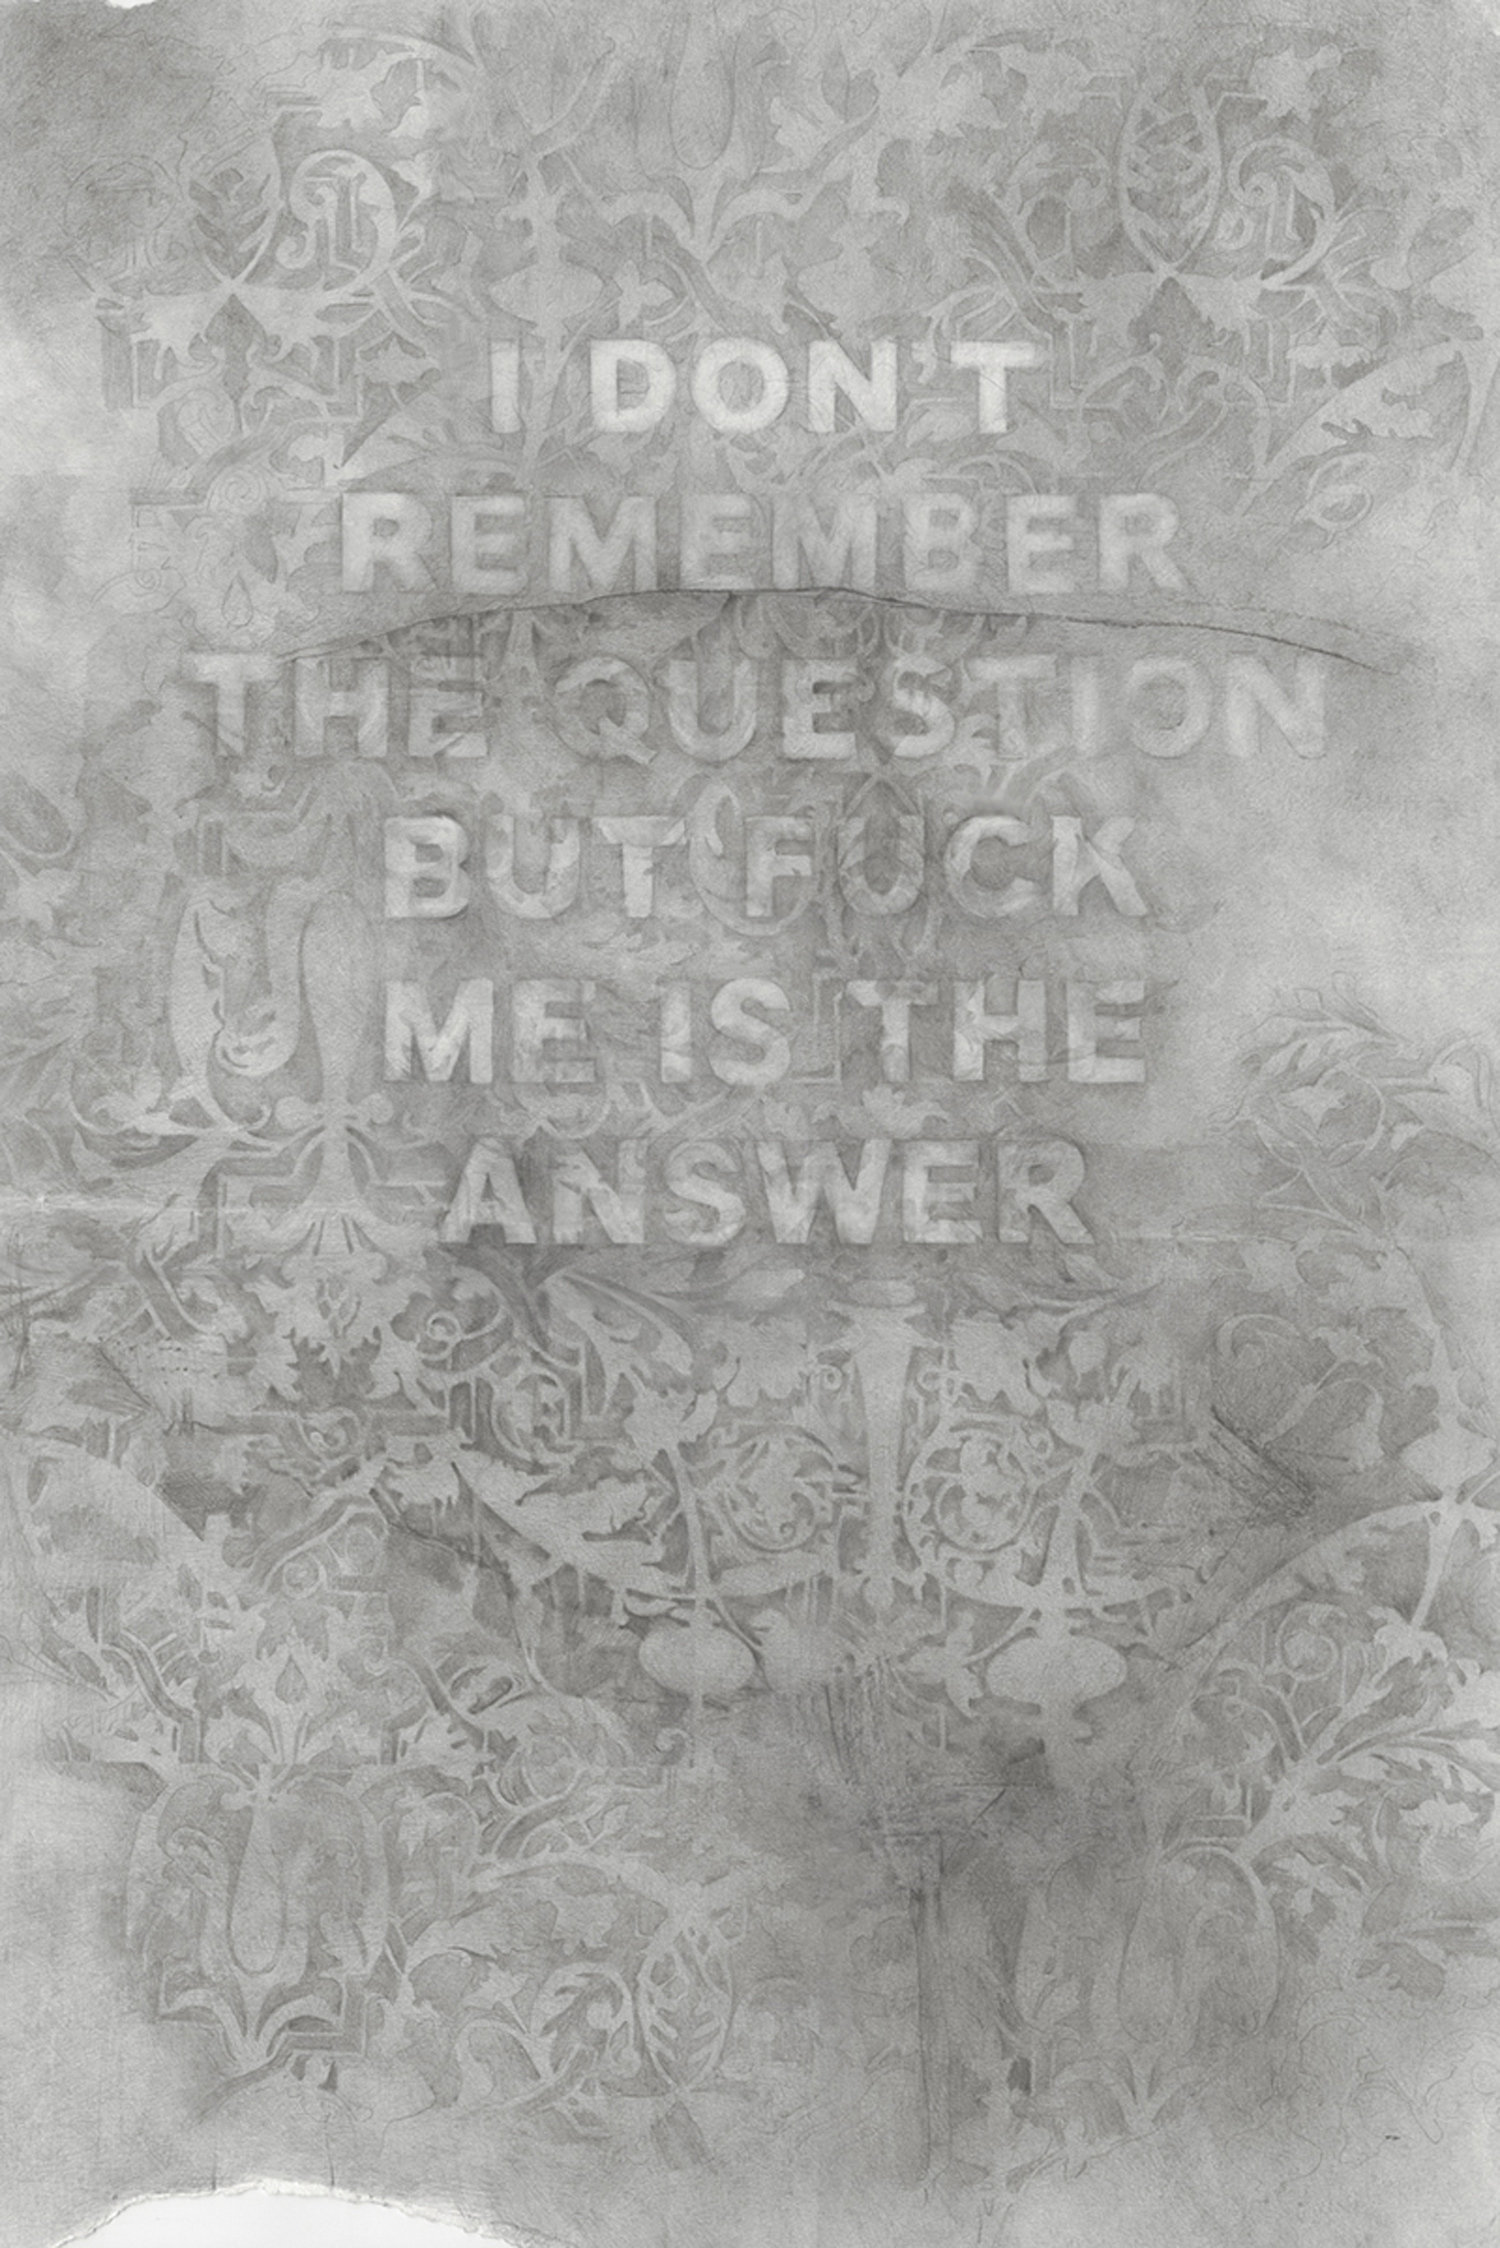 I Don't Remember The Question But Fuck Me Is The Answer , graphite on paper, 22 x 32 inches, 2016